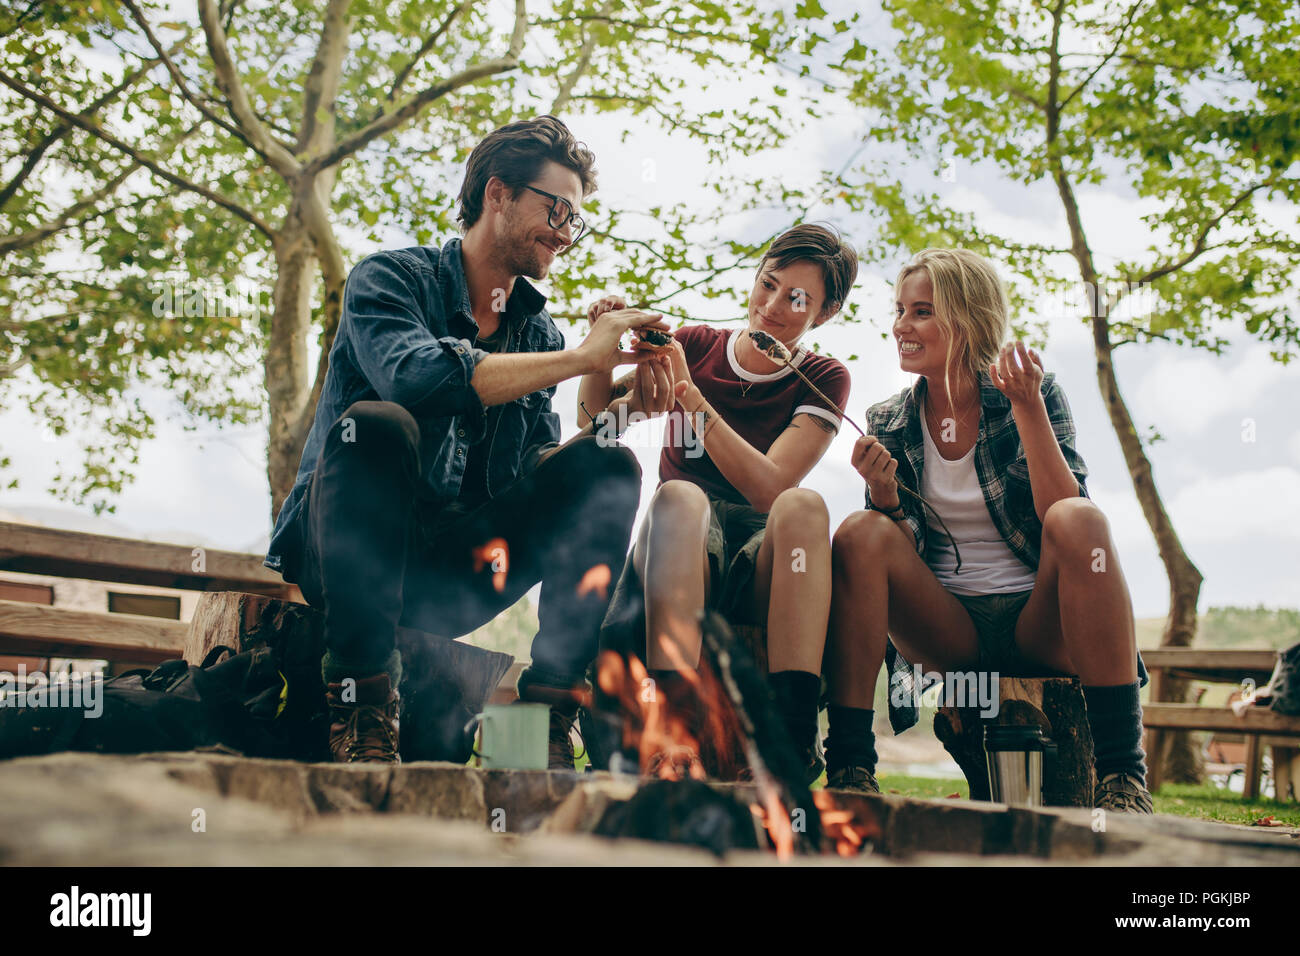 Smiling friends on holiday toasting food on bonfire. Friends making a sandwich with toasted marshmallows sitting outdoors in the countryside. - Stock Image